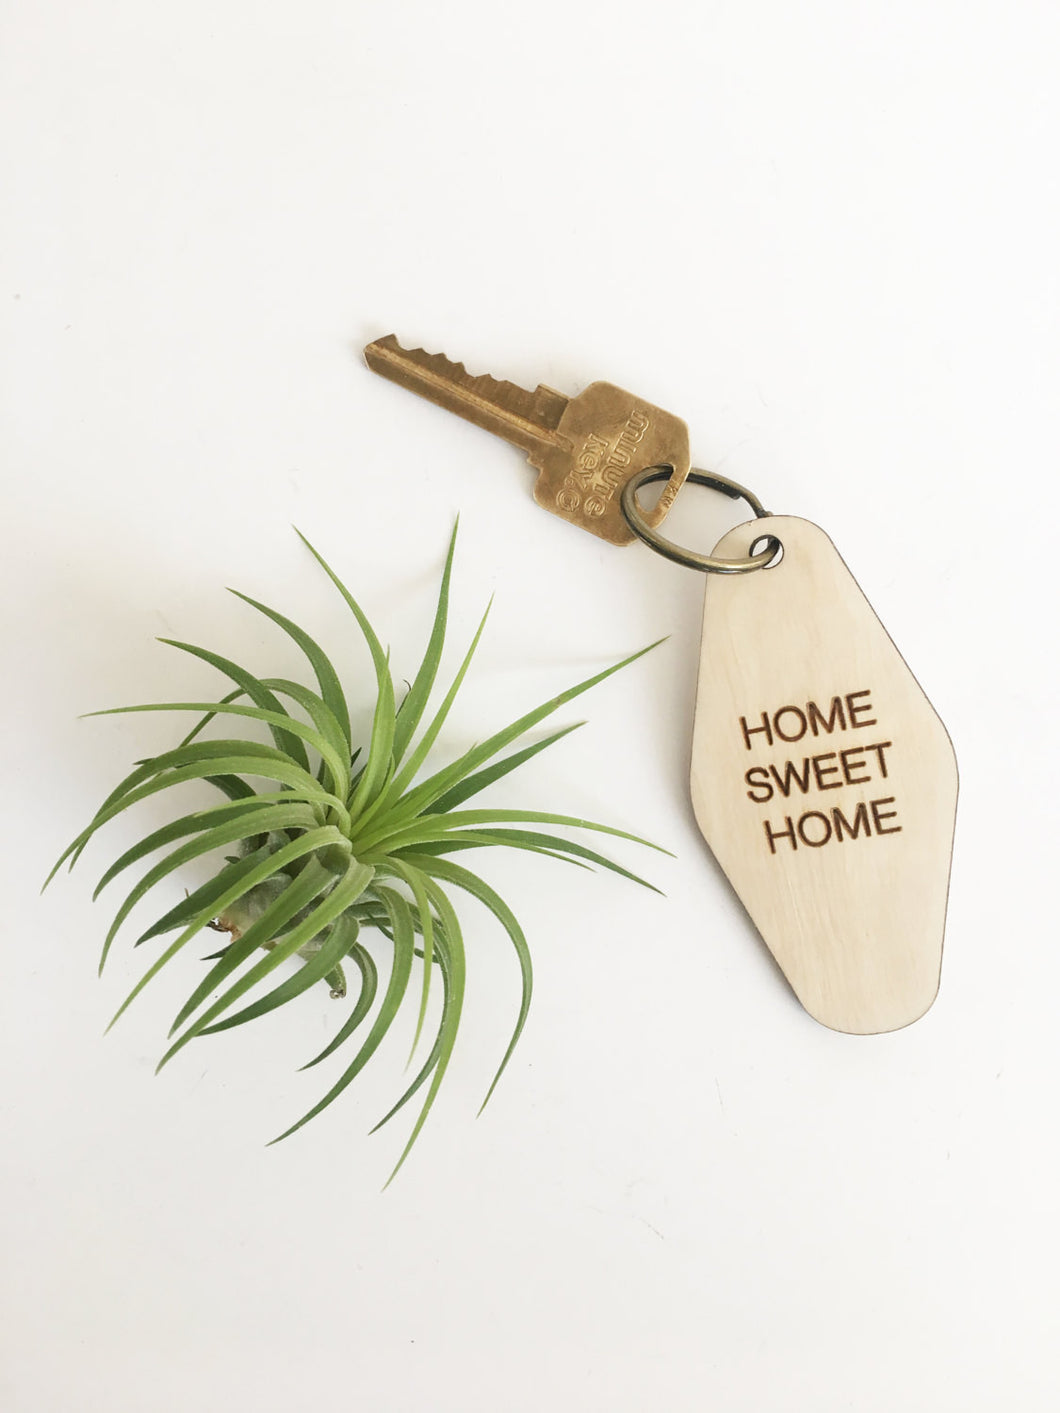 retro key fob >> wooden key chain >> home sweet home